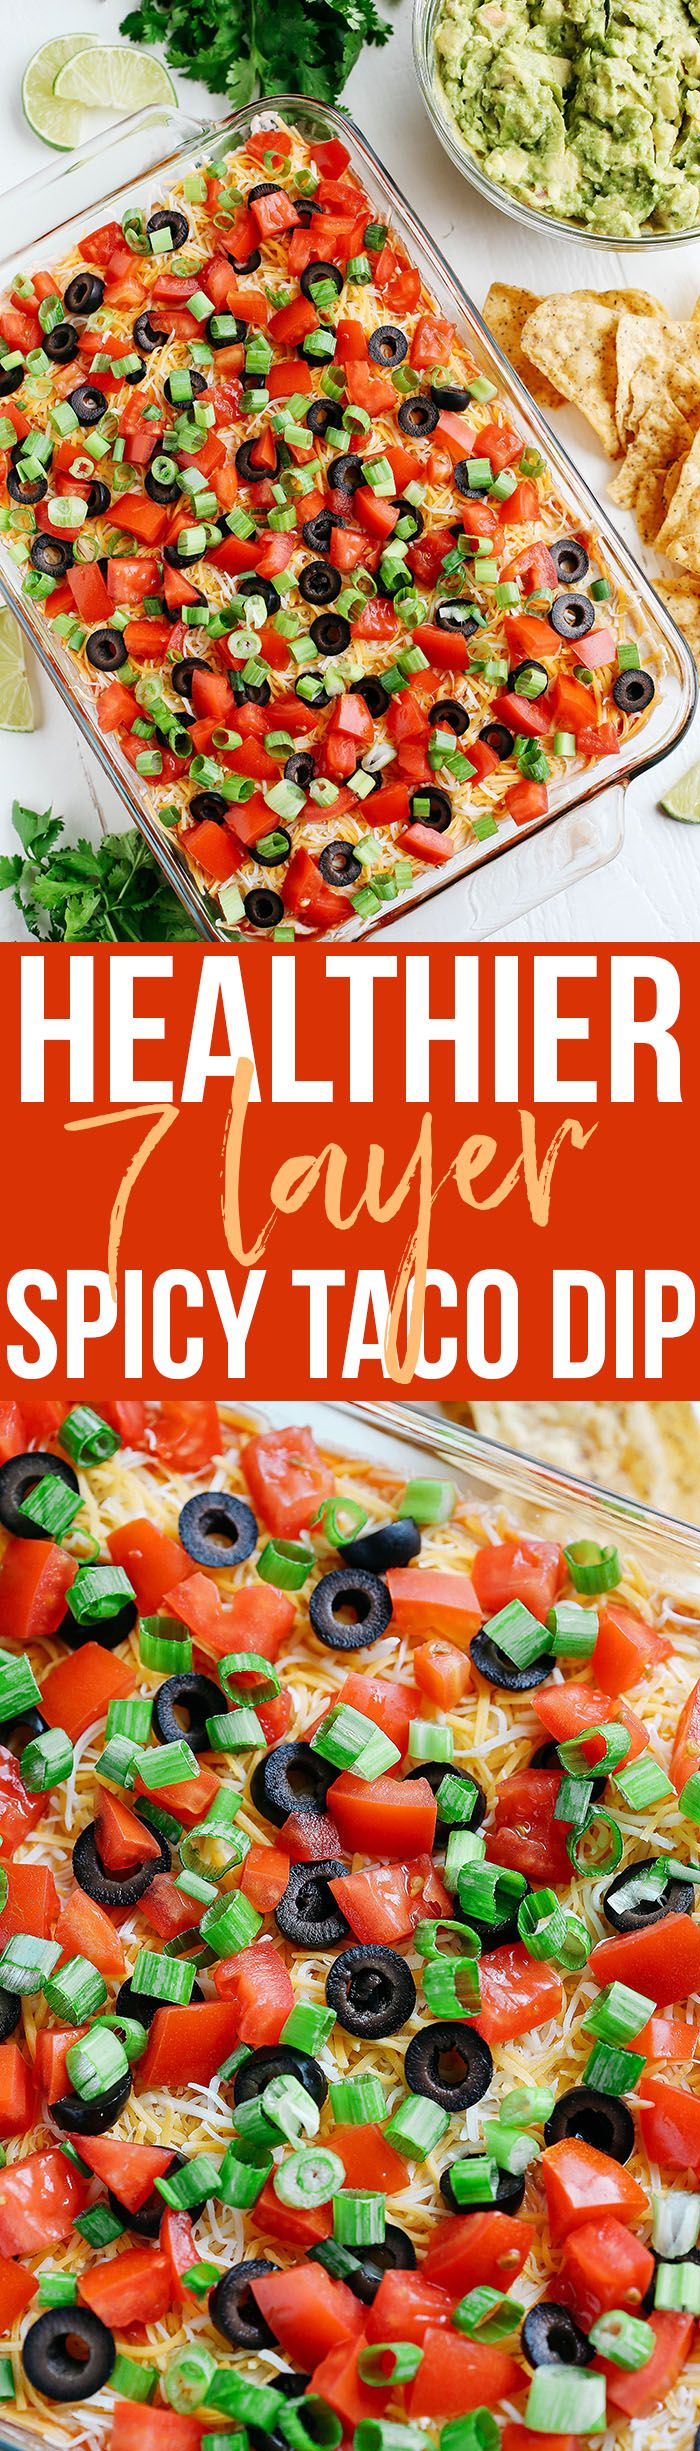 This lightened up 7 Layer Spicy Taco Dip is the perfect party appetizer that you can enjoy guilt-free! Unofficialmeal AD